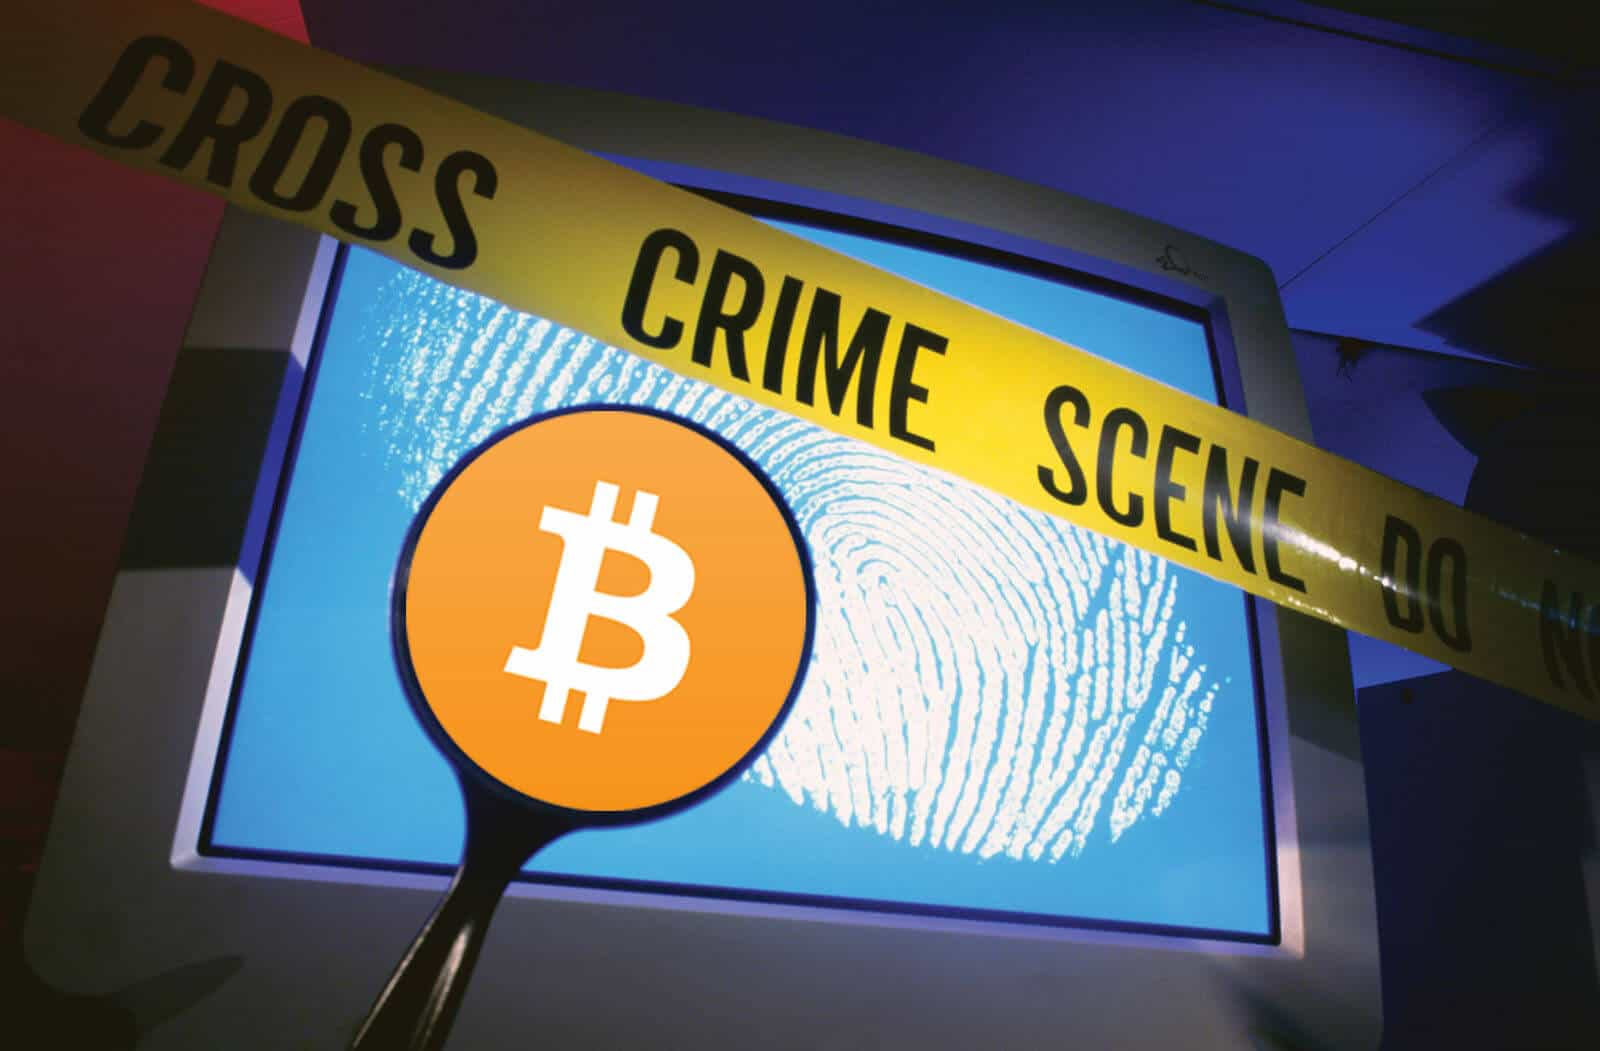 Is crypto linked to crime?